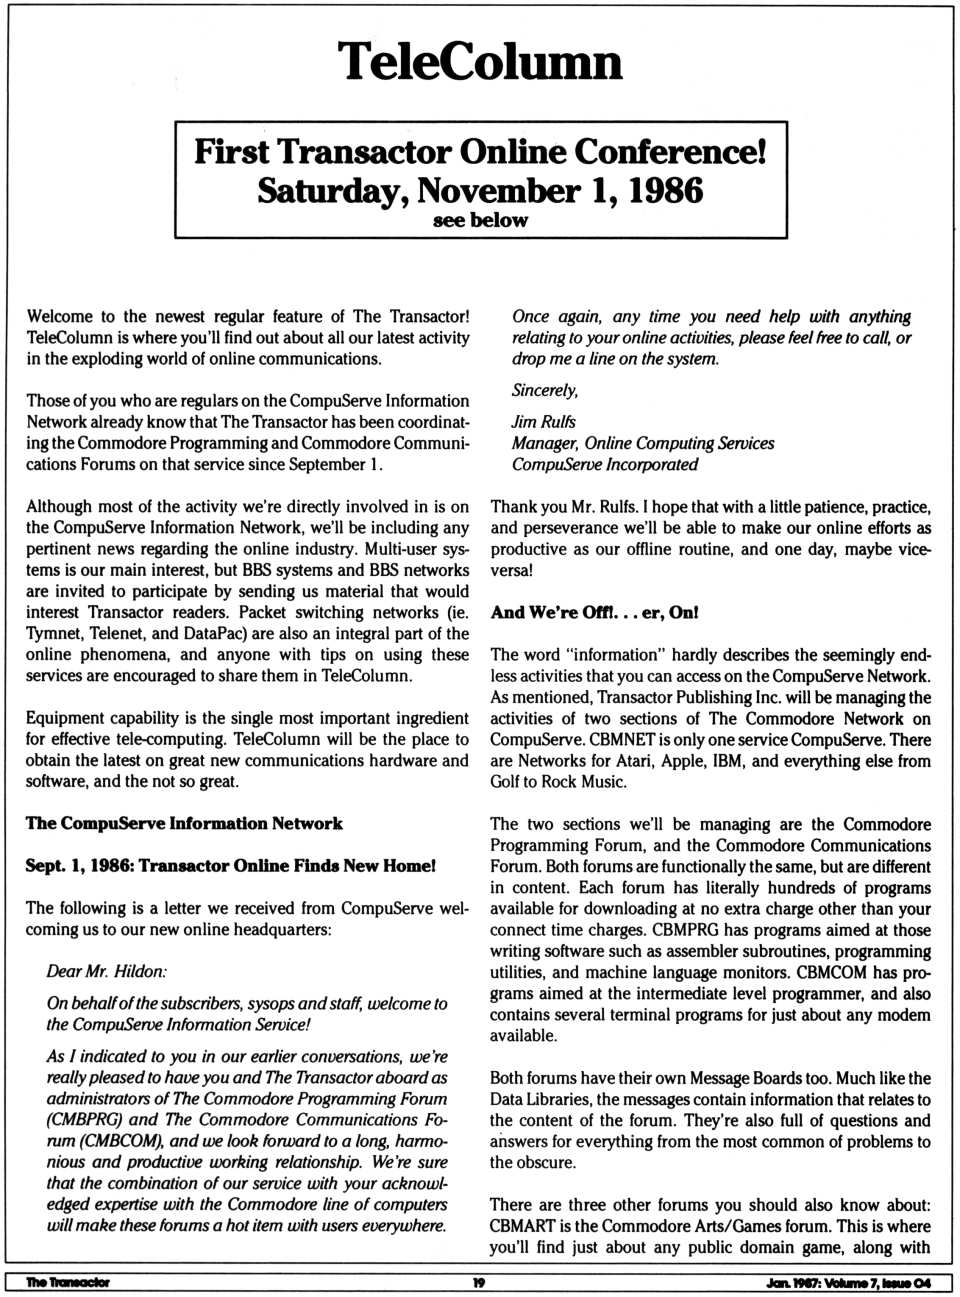 [TeleColumn (1/5)  First Transactor Online Conference! Saturday, November 1, 1986]